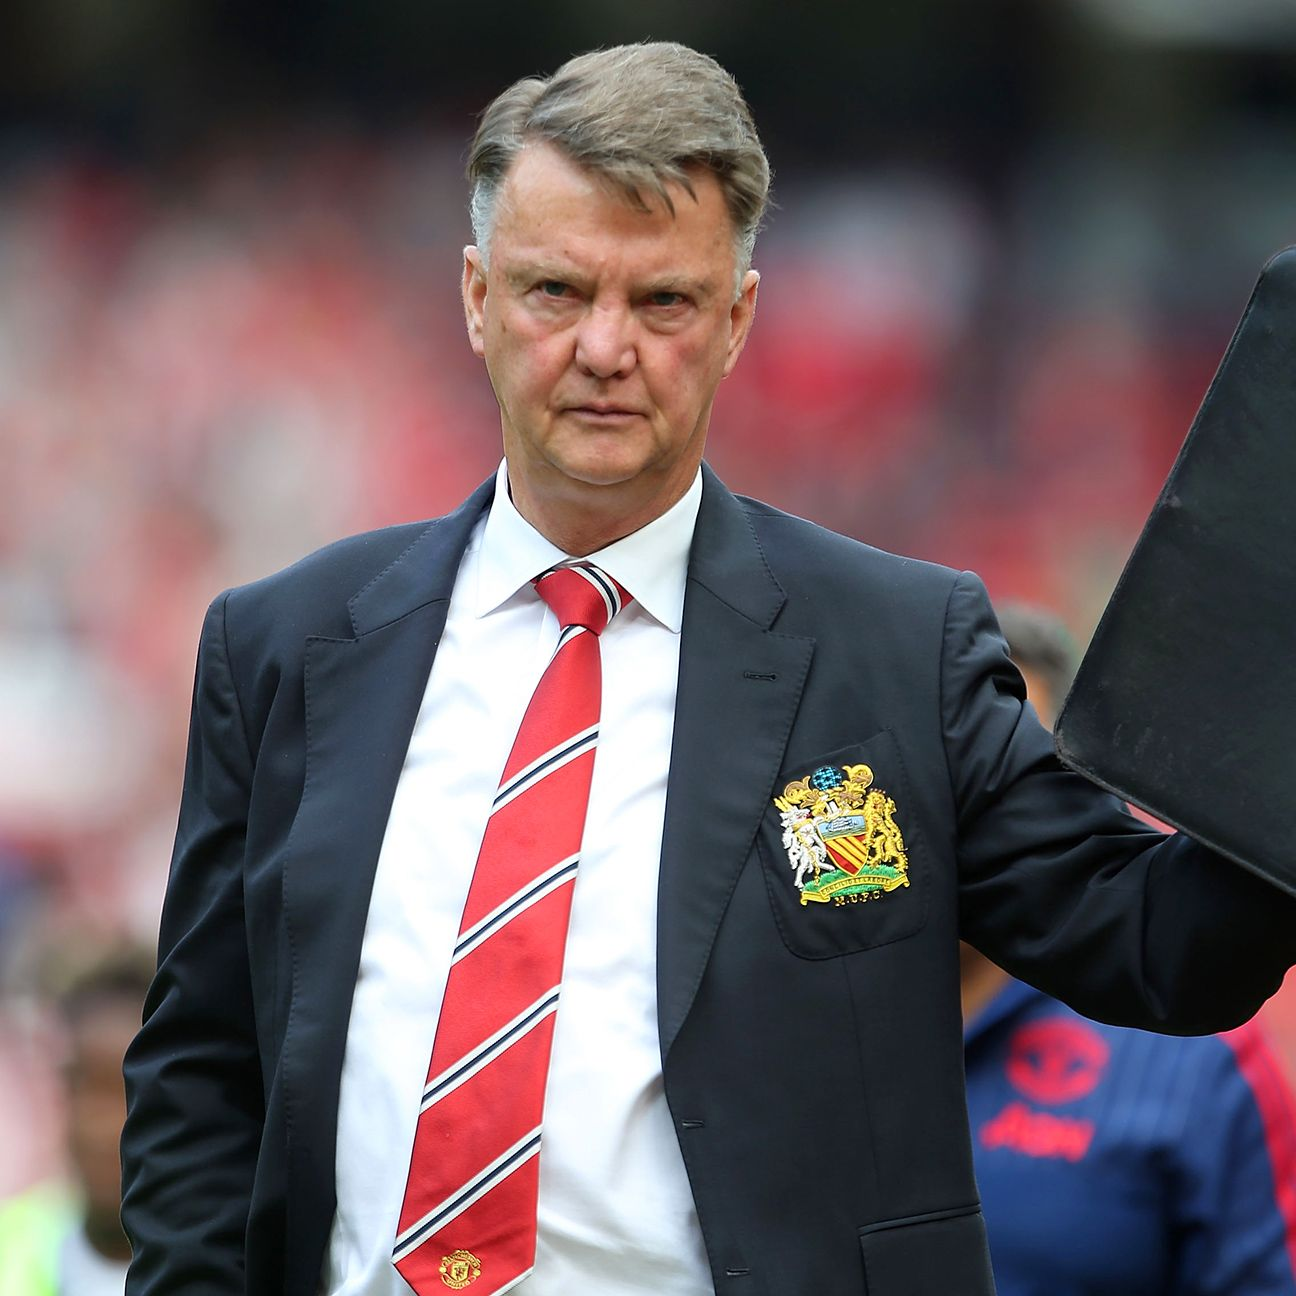 There was no shortage of activity during the transfer window for Louis van Gaal and Manchester United.